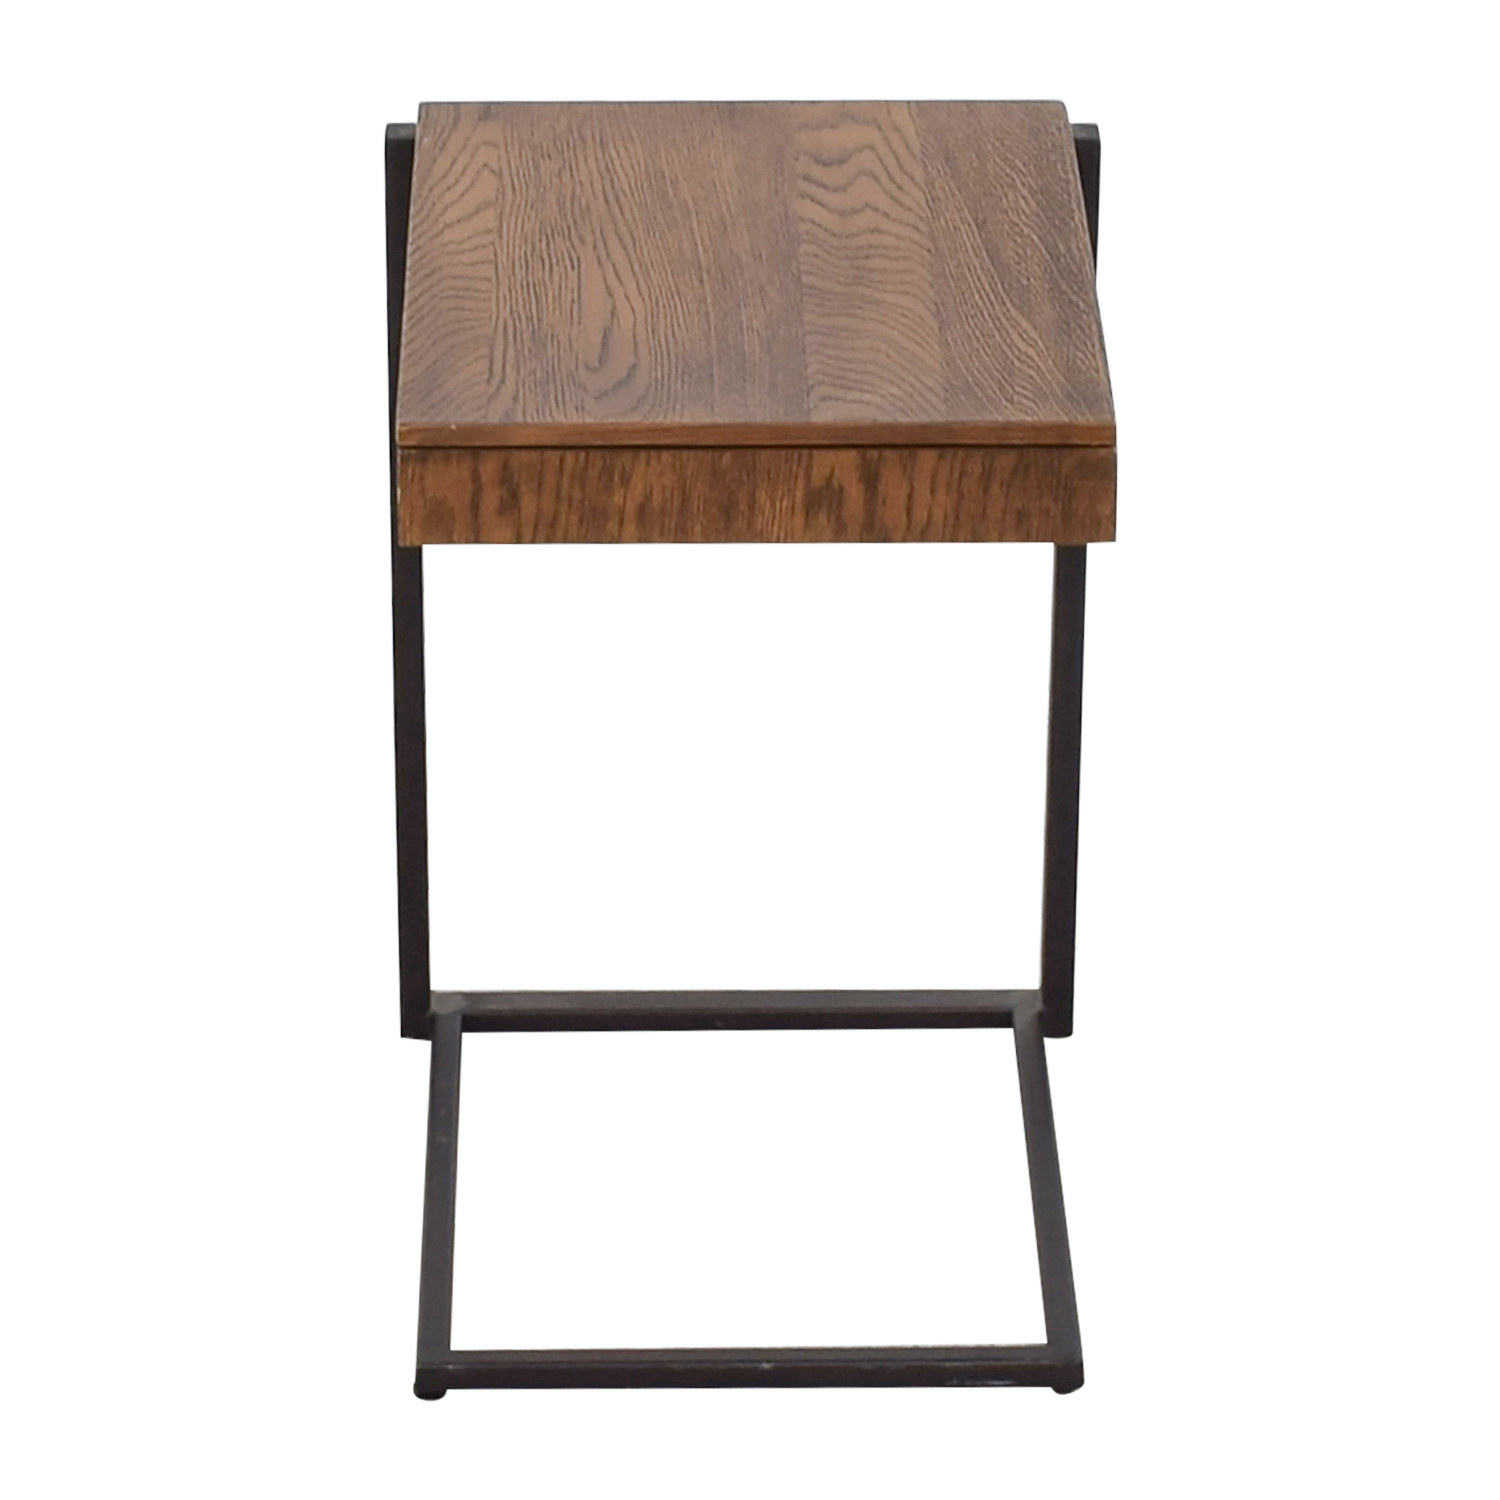 Rustic Wood and Metal Nightstand brown